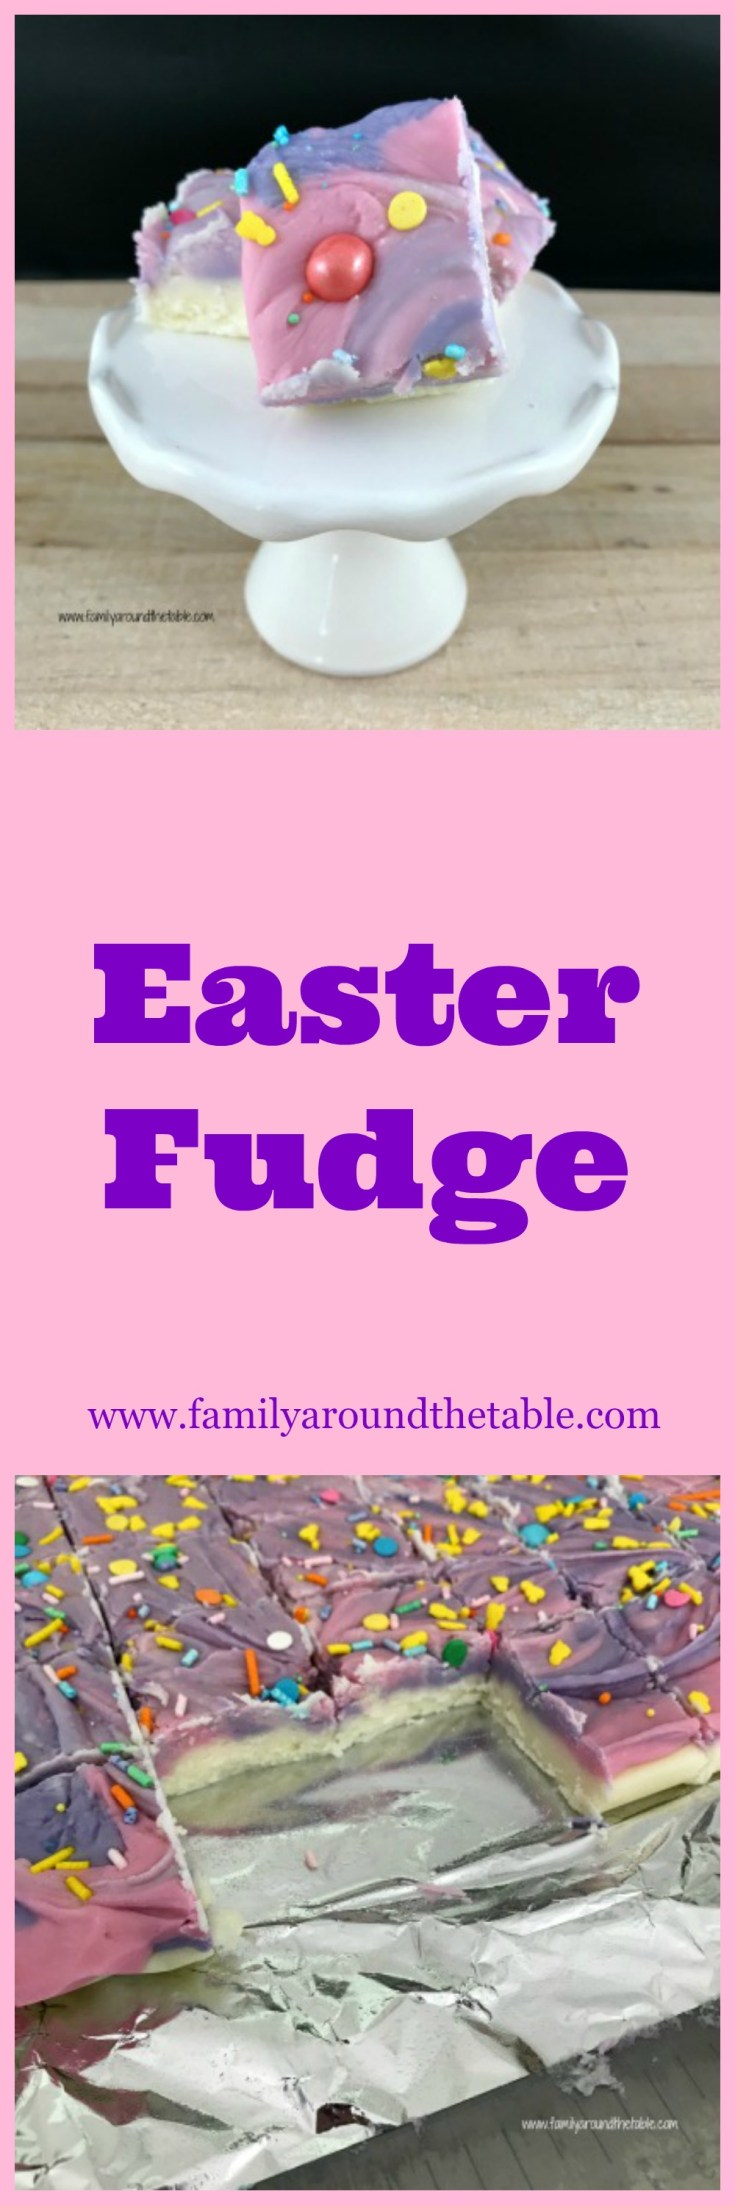 Easter fudge is a festive treat. Wrap for Easter baskets or as a favor for guests.